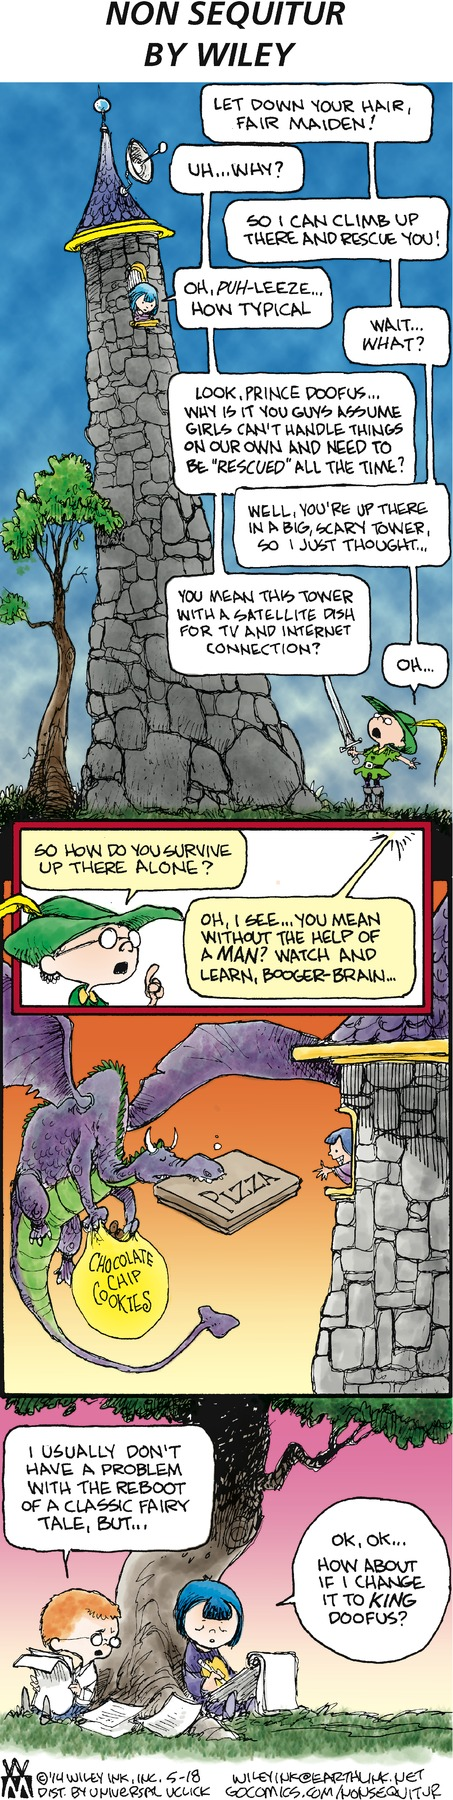 Non Sequitur Comic Strip for May 18, 2014